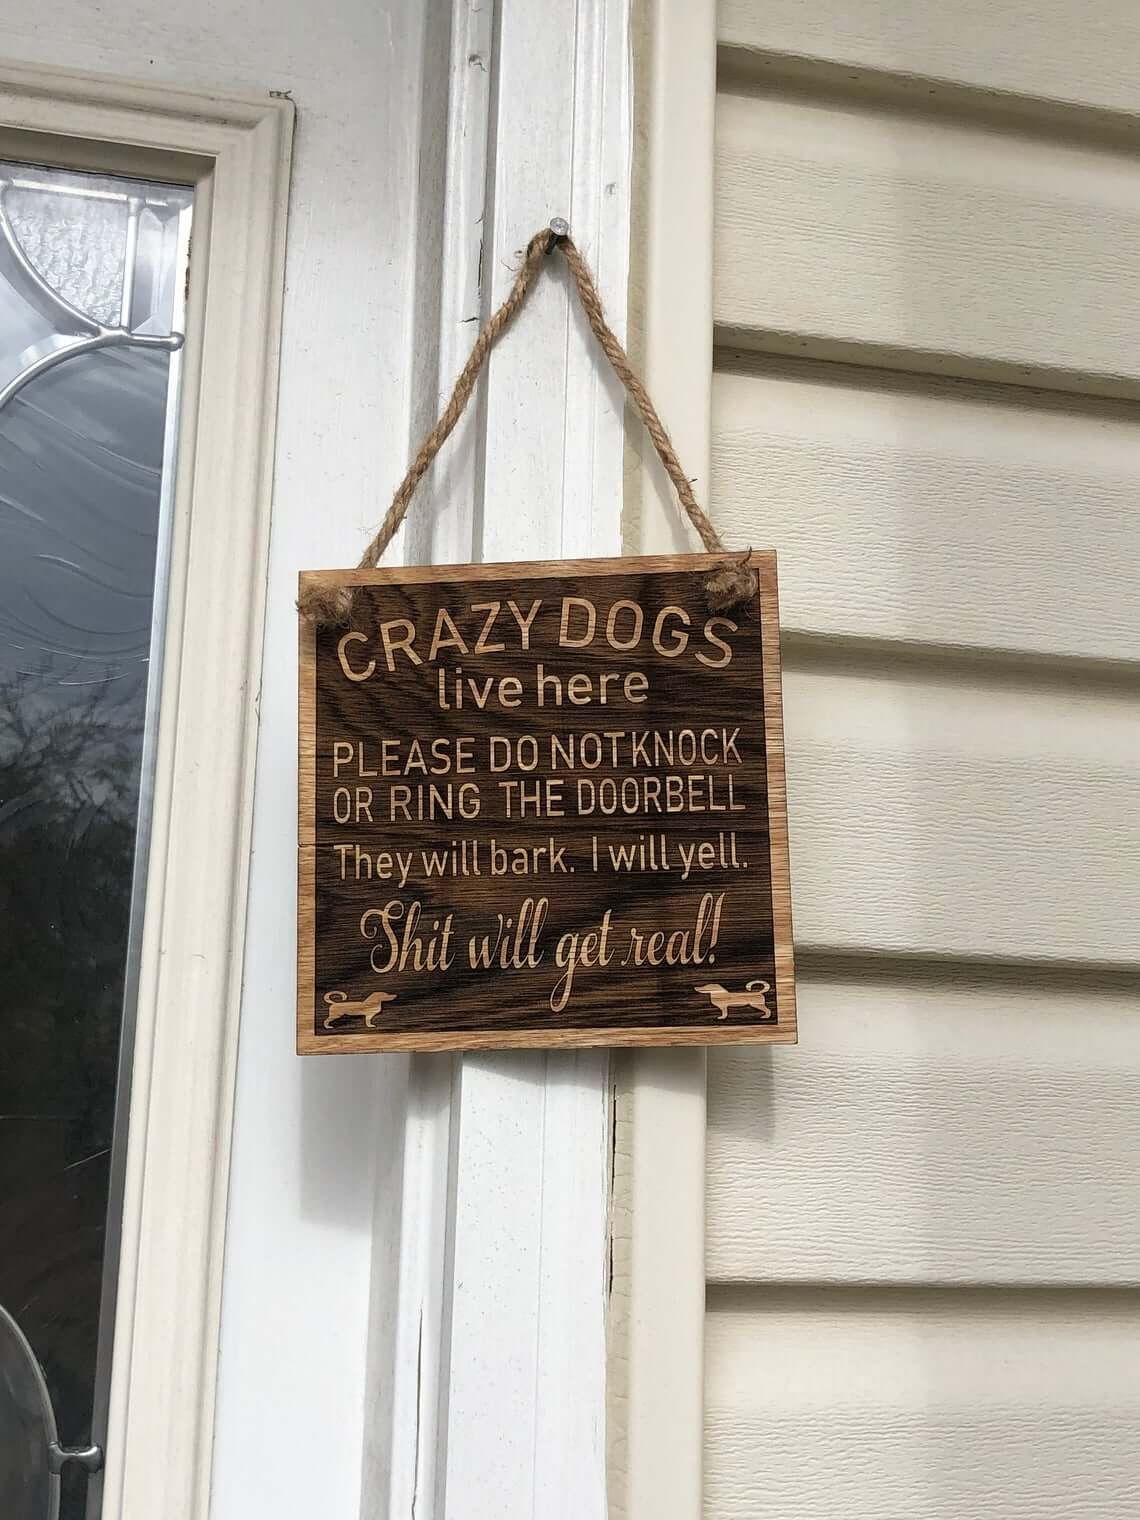 Outdoor Crazy Dogs Live Here Wooden Sign